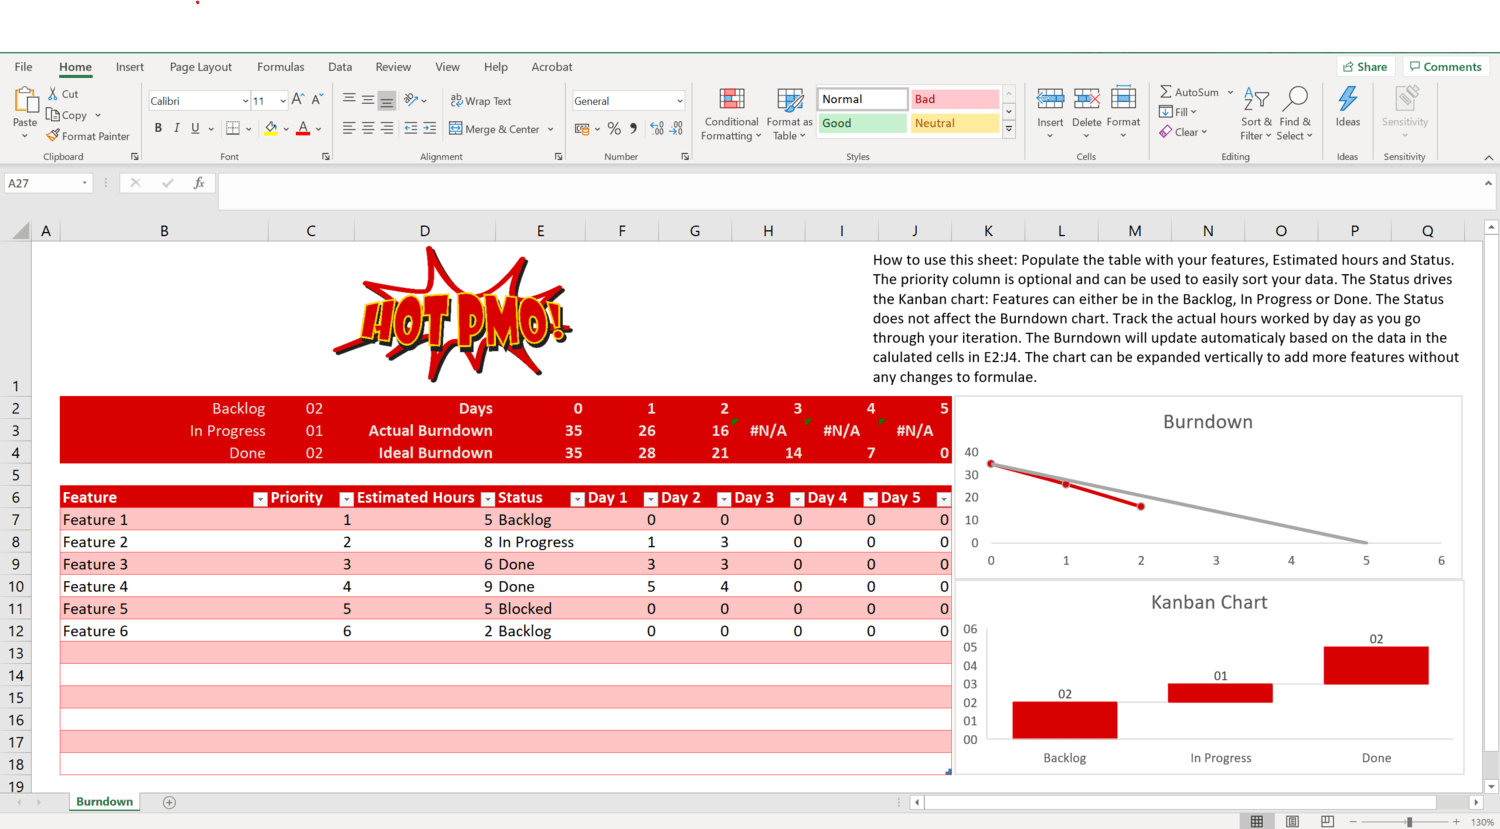 Image of an Excel Spreadsheet containing an agile burndown chart.